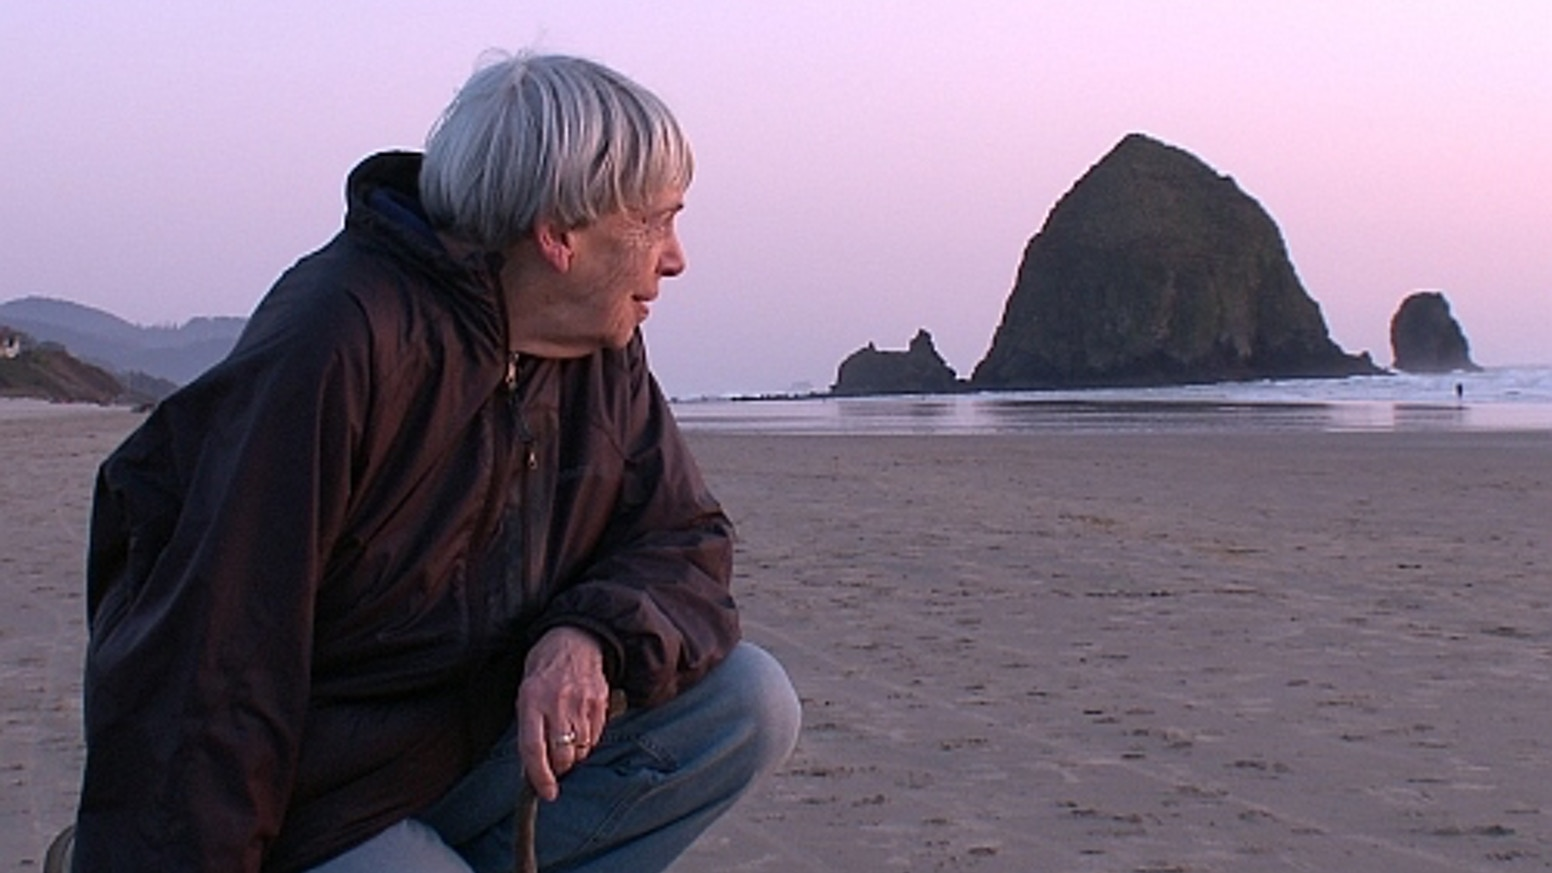 Ursula K. Le Guin, still from Worlds of Ursula K. Le Guin, dir. Arwen Curry